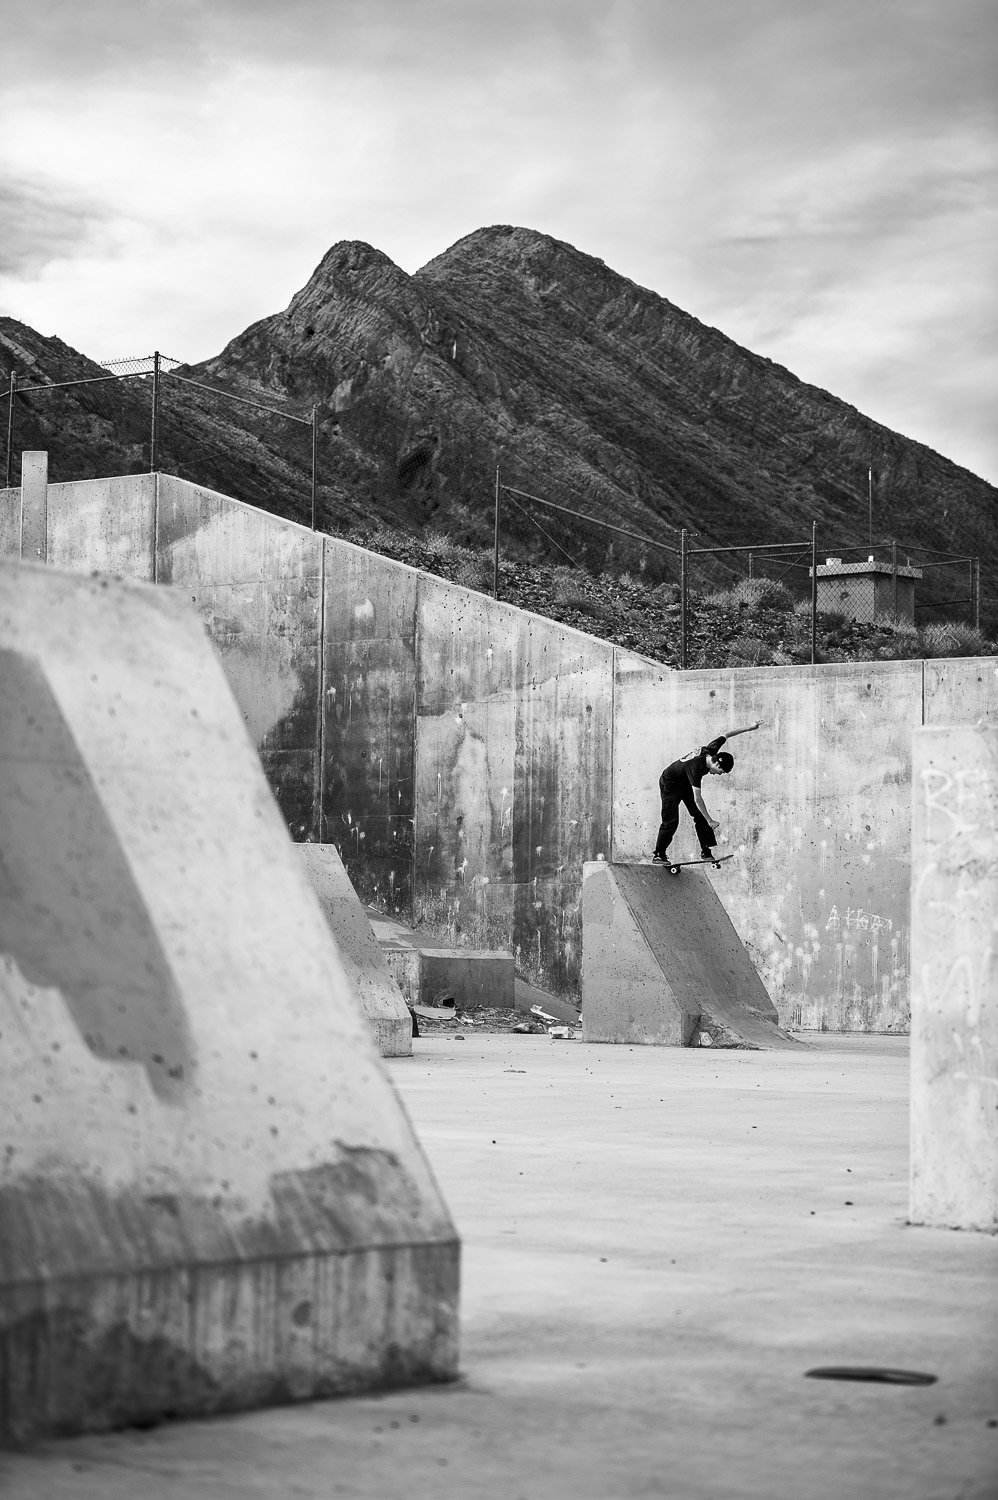 Sam_Lind_BackTail_VegasFinal.jpg